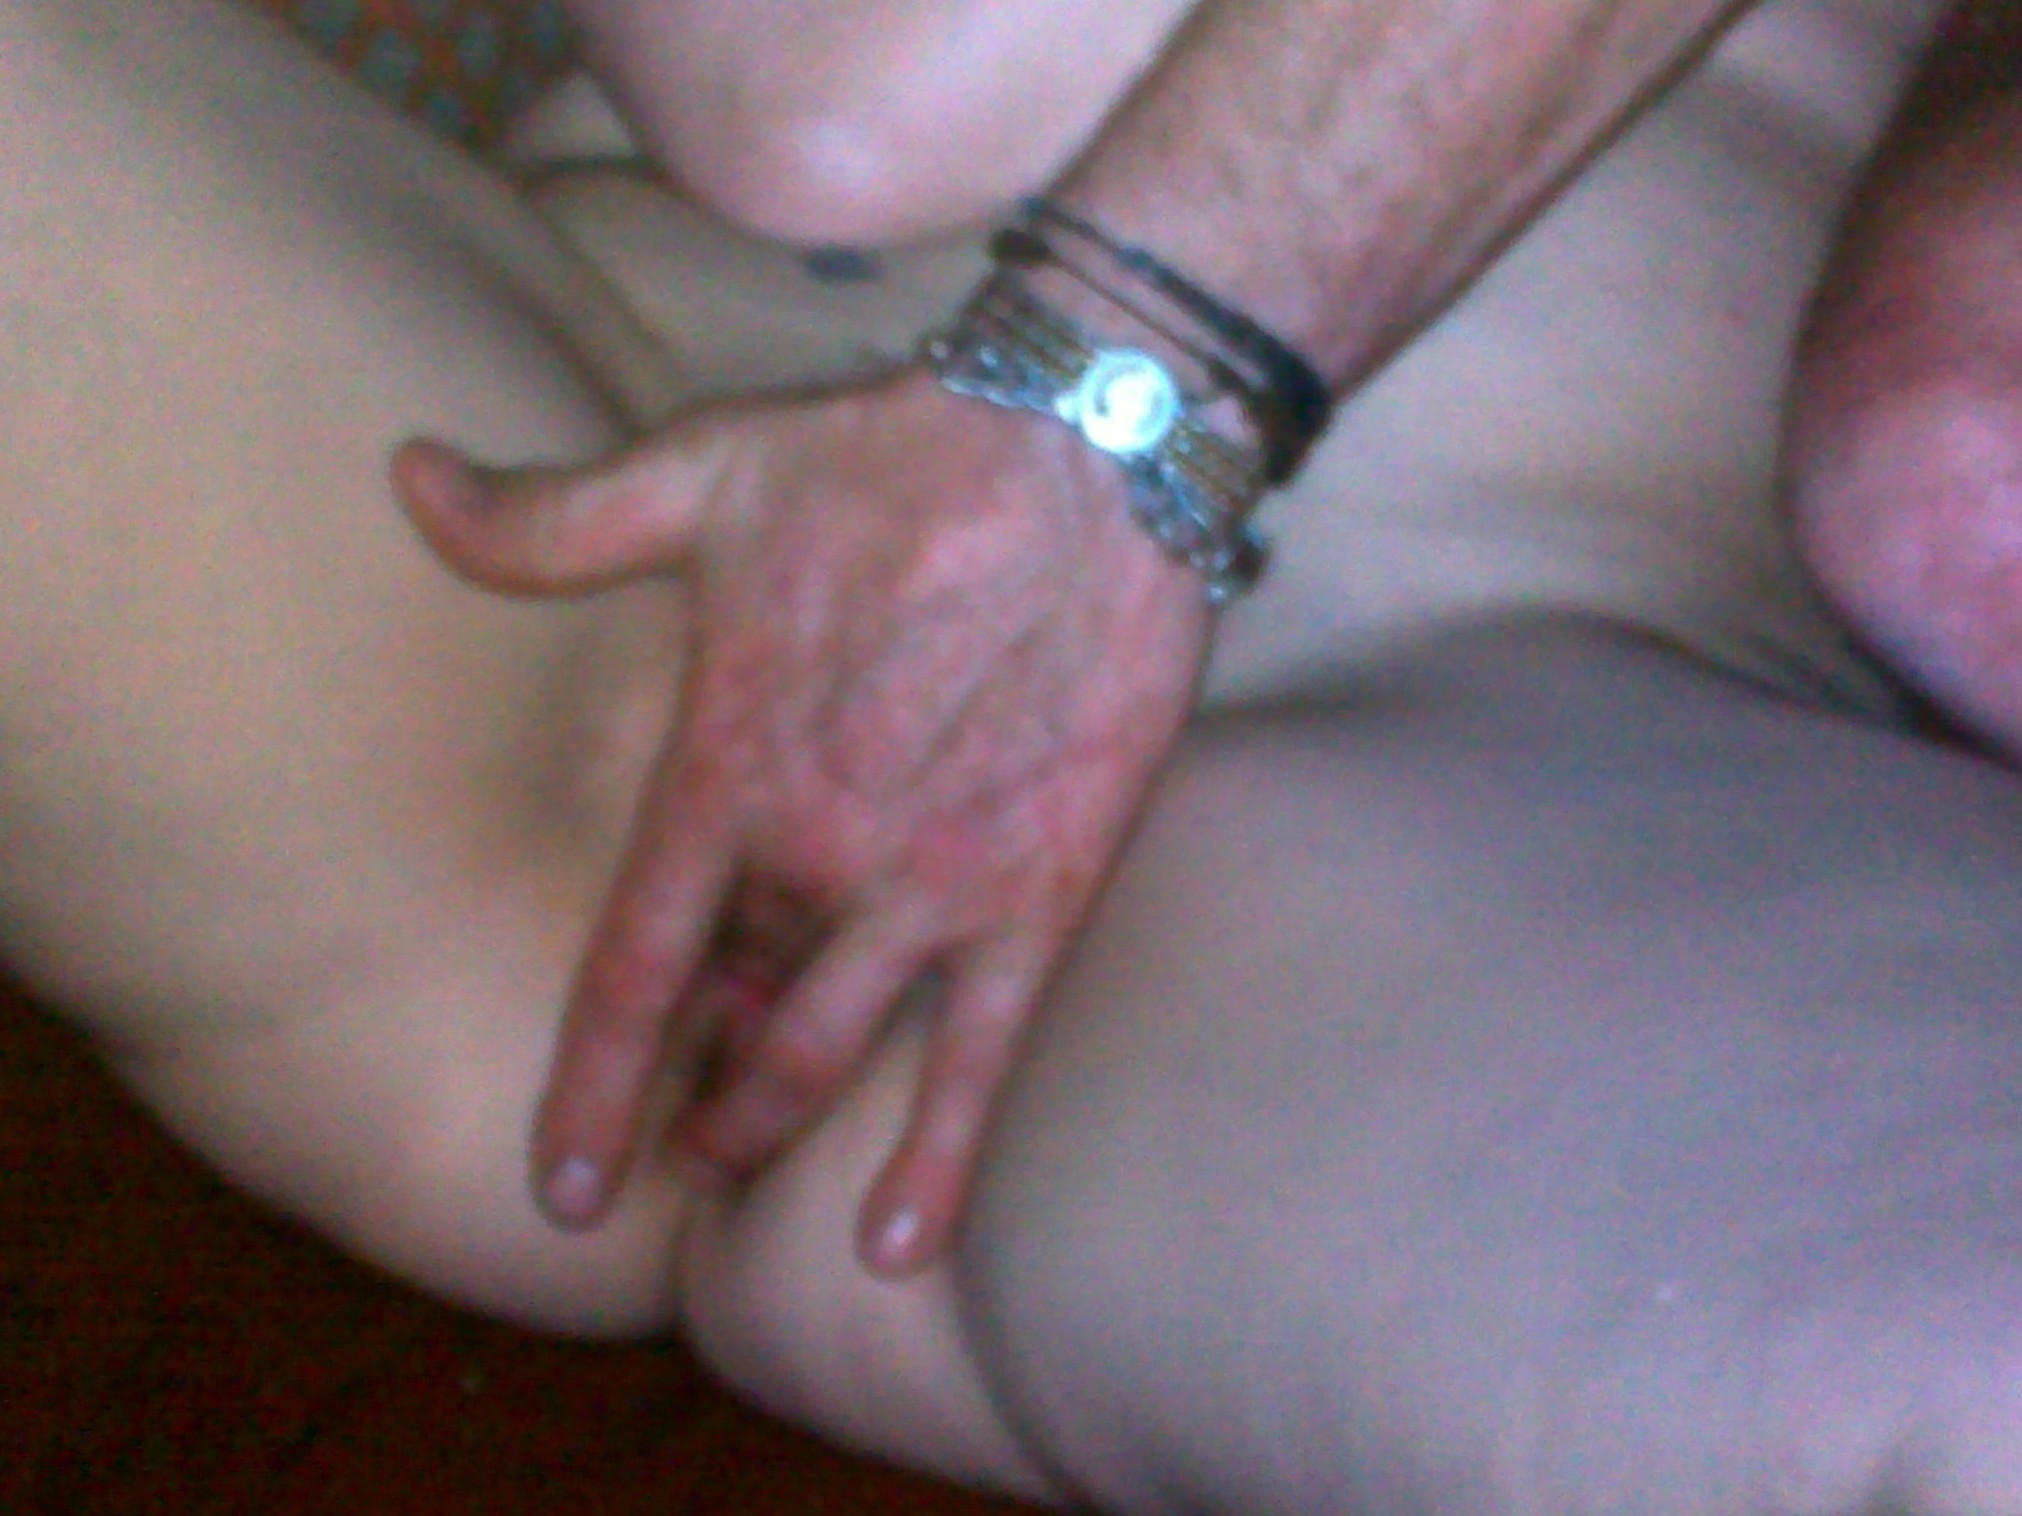 being fingered